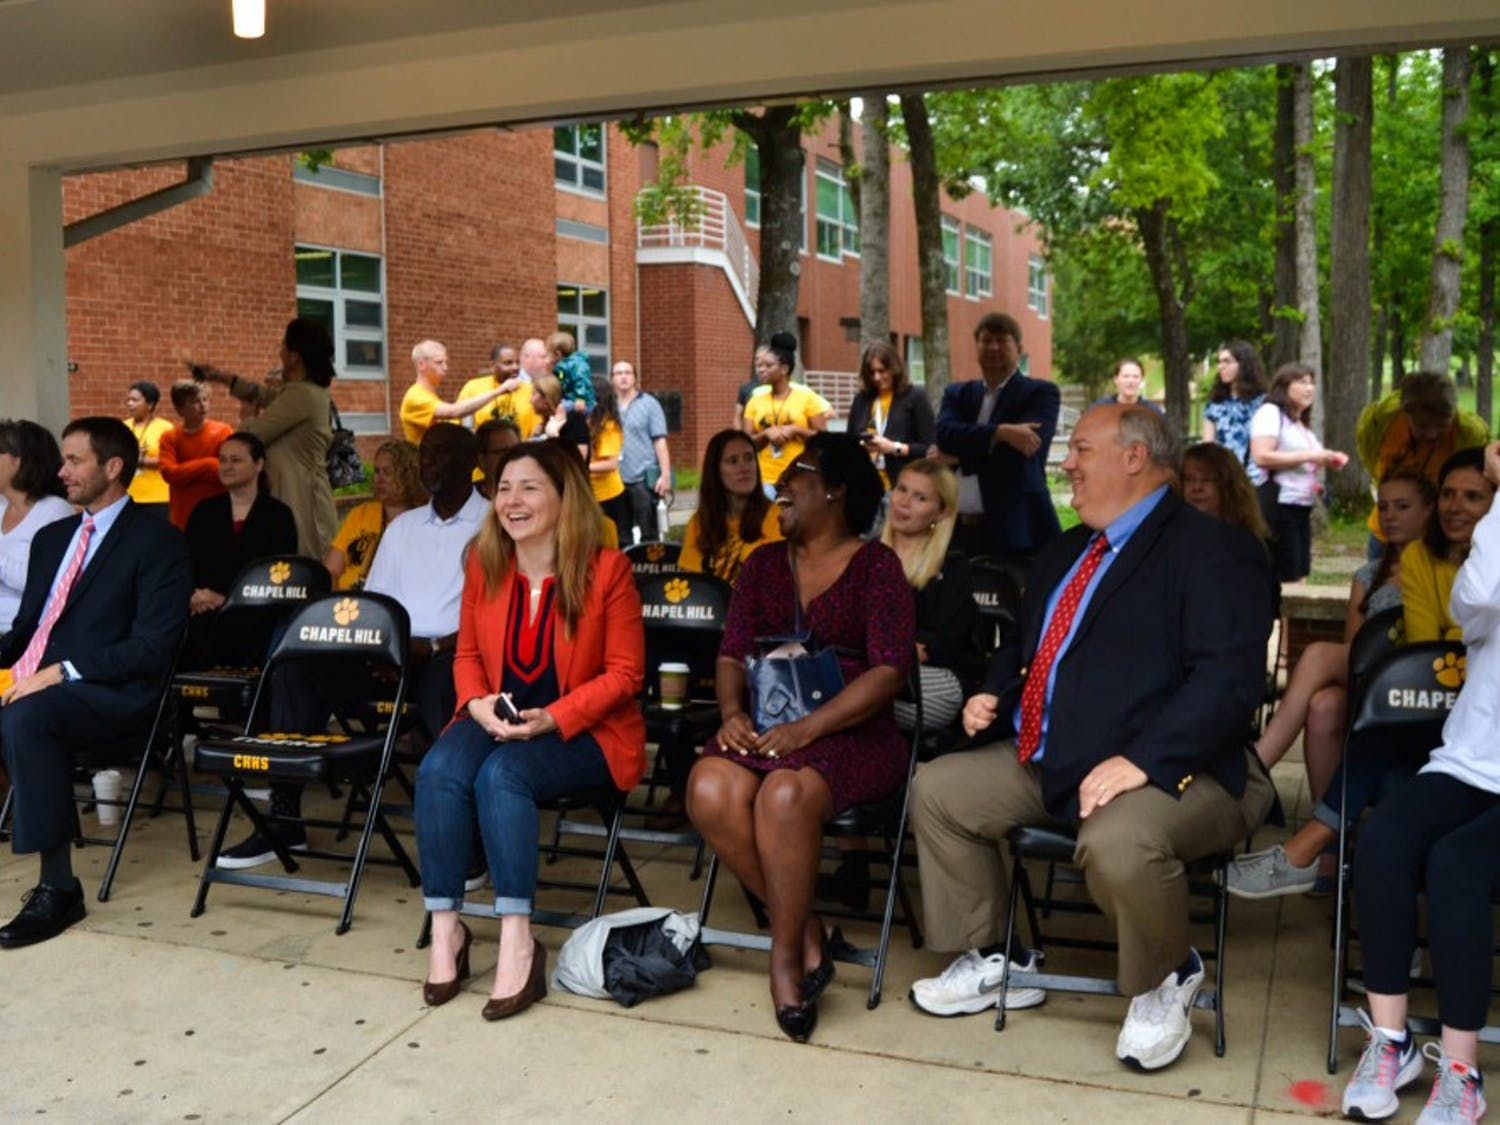 City officials, teachers, students and reporters gather in the Chapel Hill High courtyard to watch the groundbreaking for the new renovations for the school.